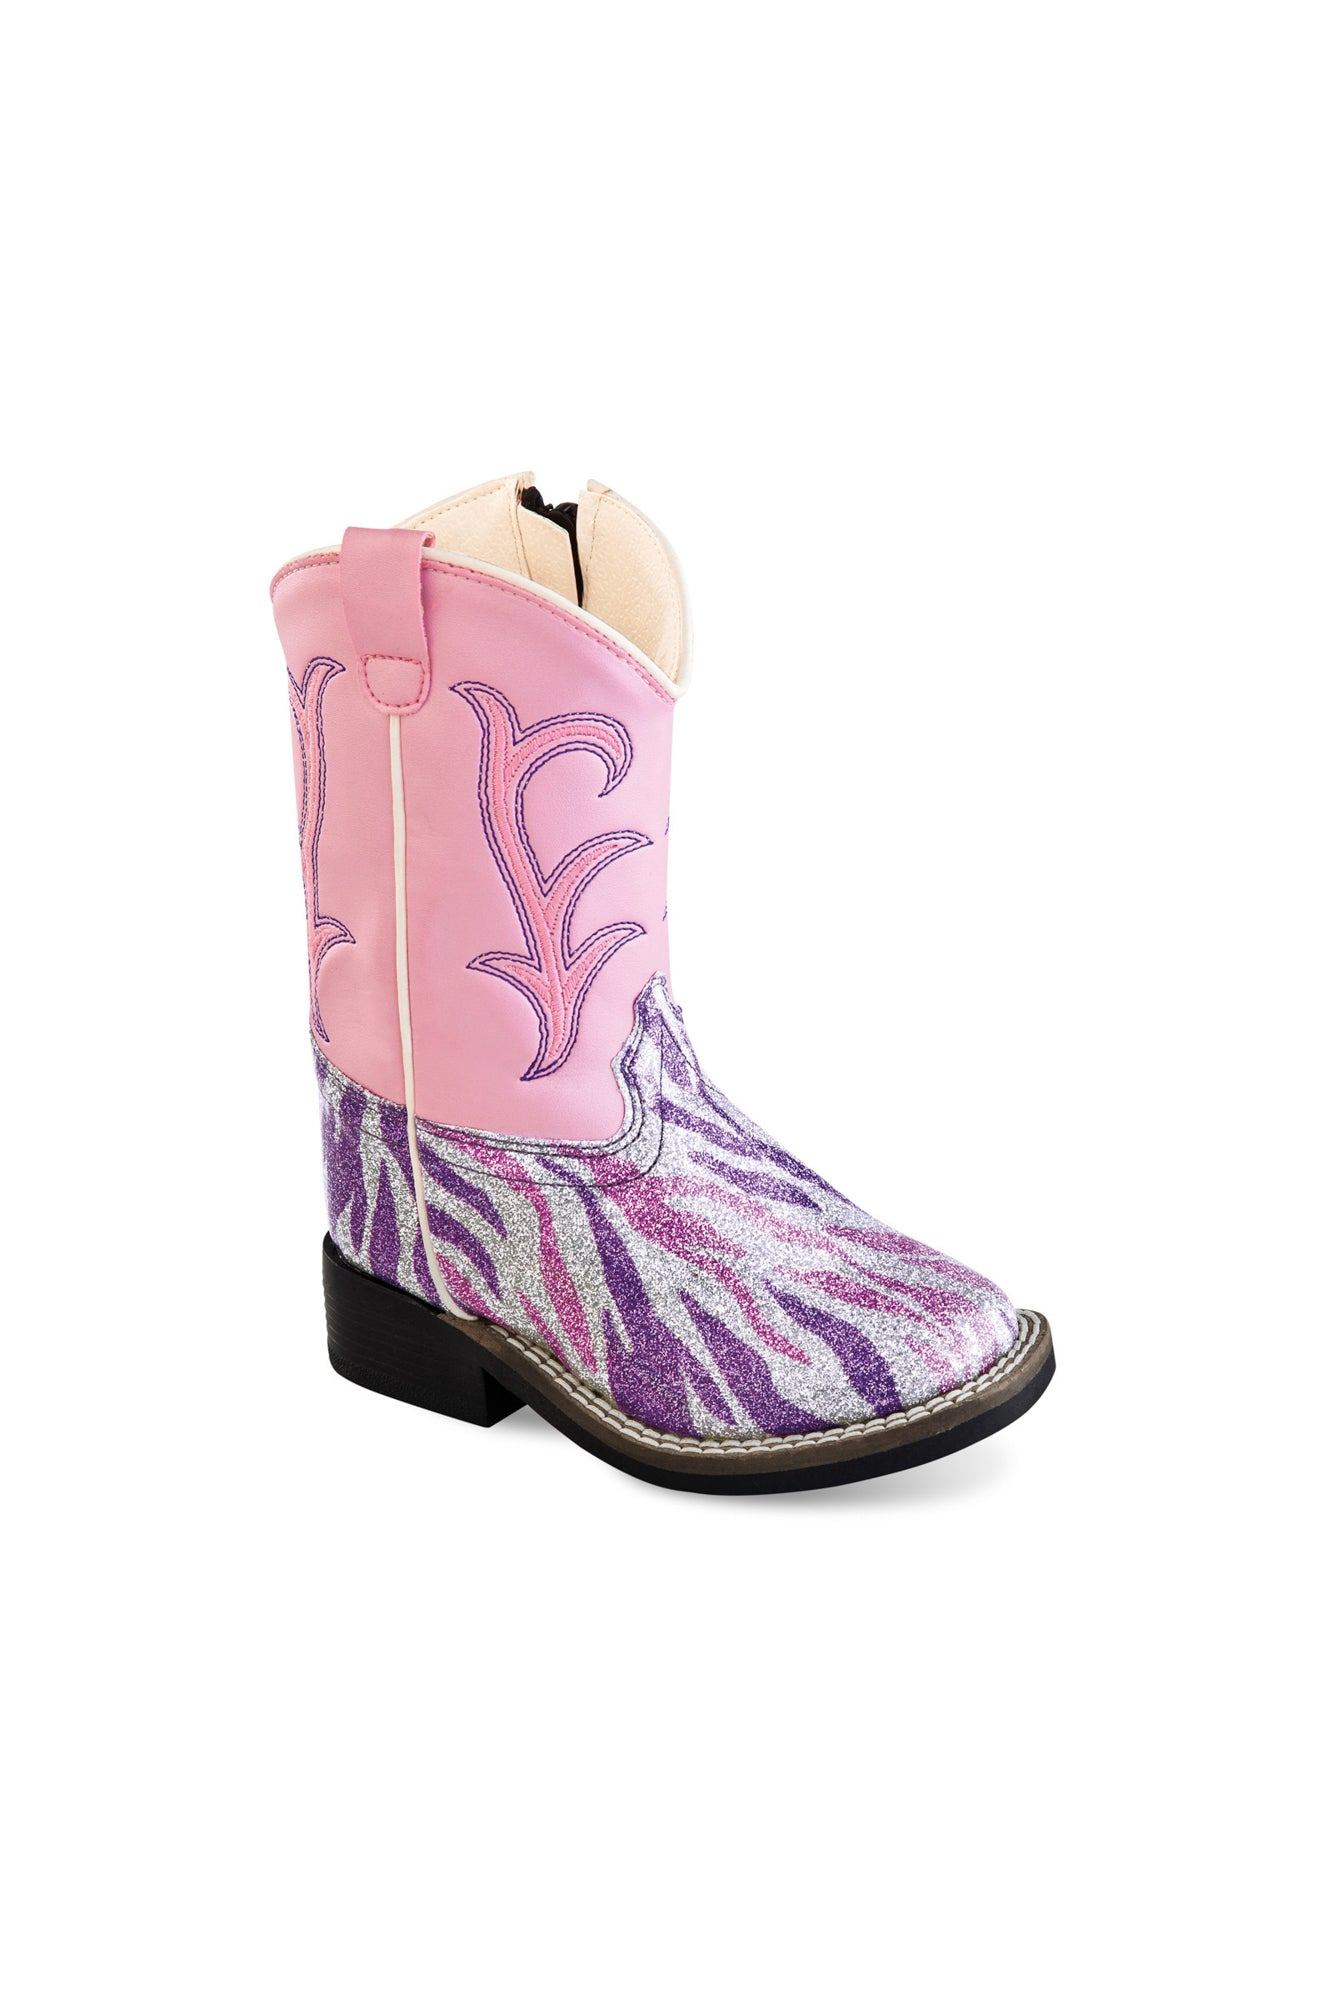 f7f782832bc Old West Pink Toddler Girls Faux Leather Glitter Cowboy Boots Boots